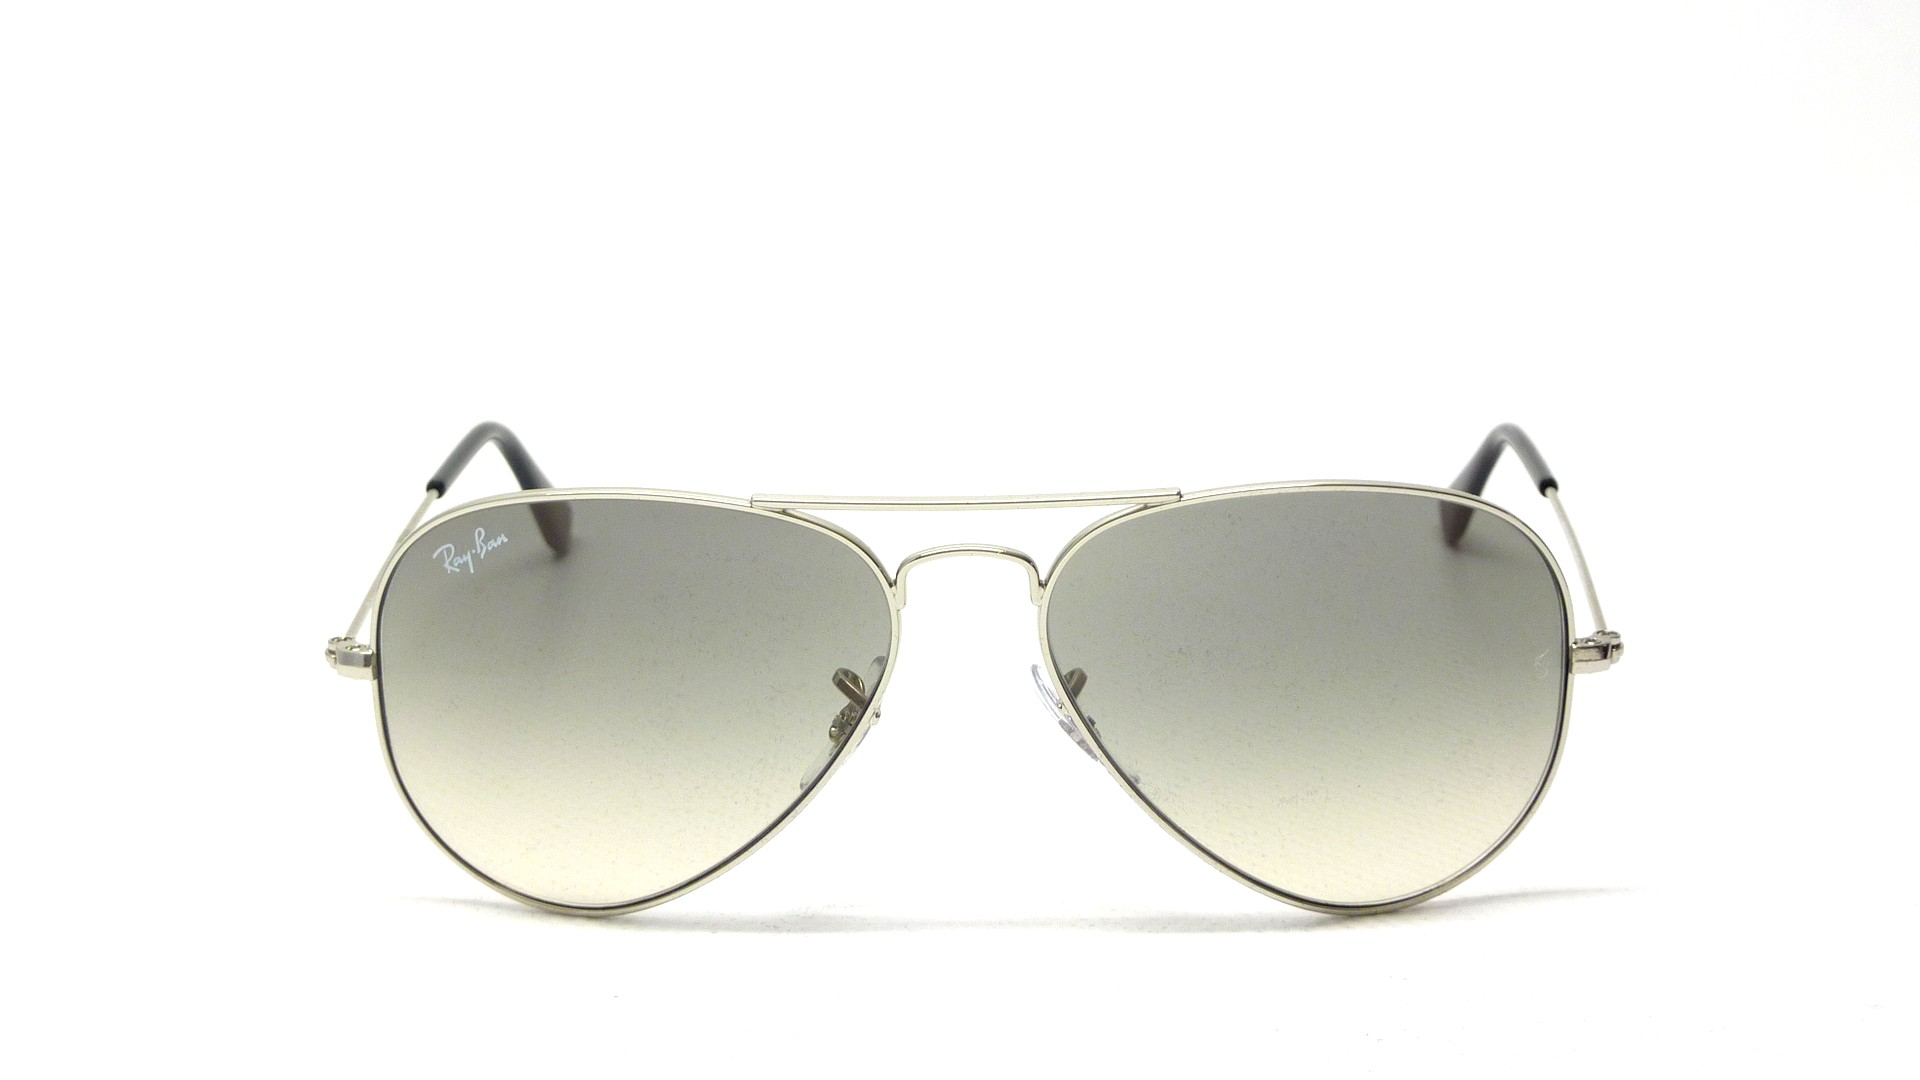 70a5760004 Rb3025 L0205 58 14 Ray Ban « Heritage Malta